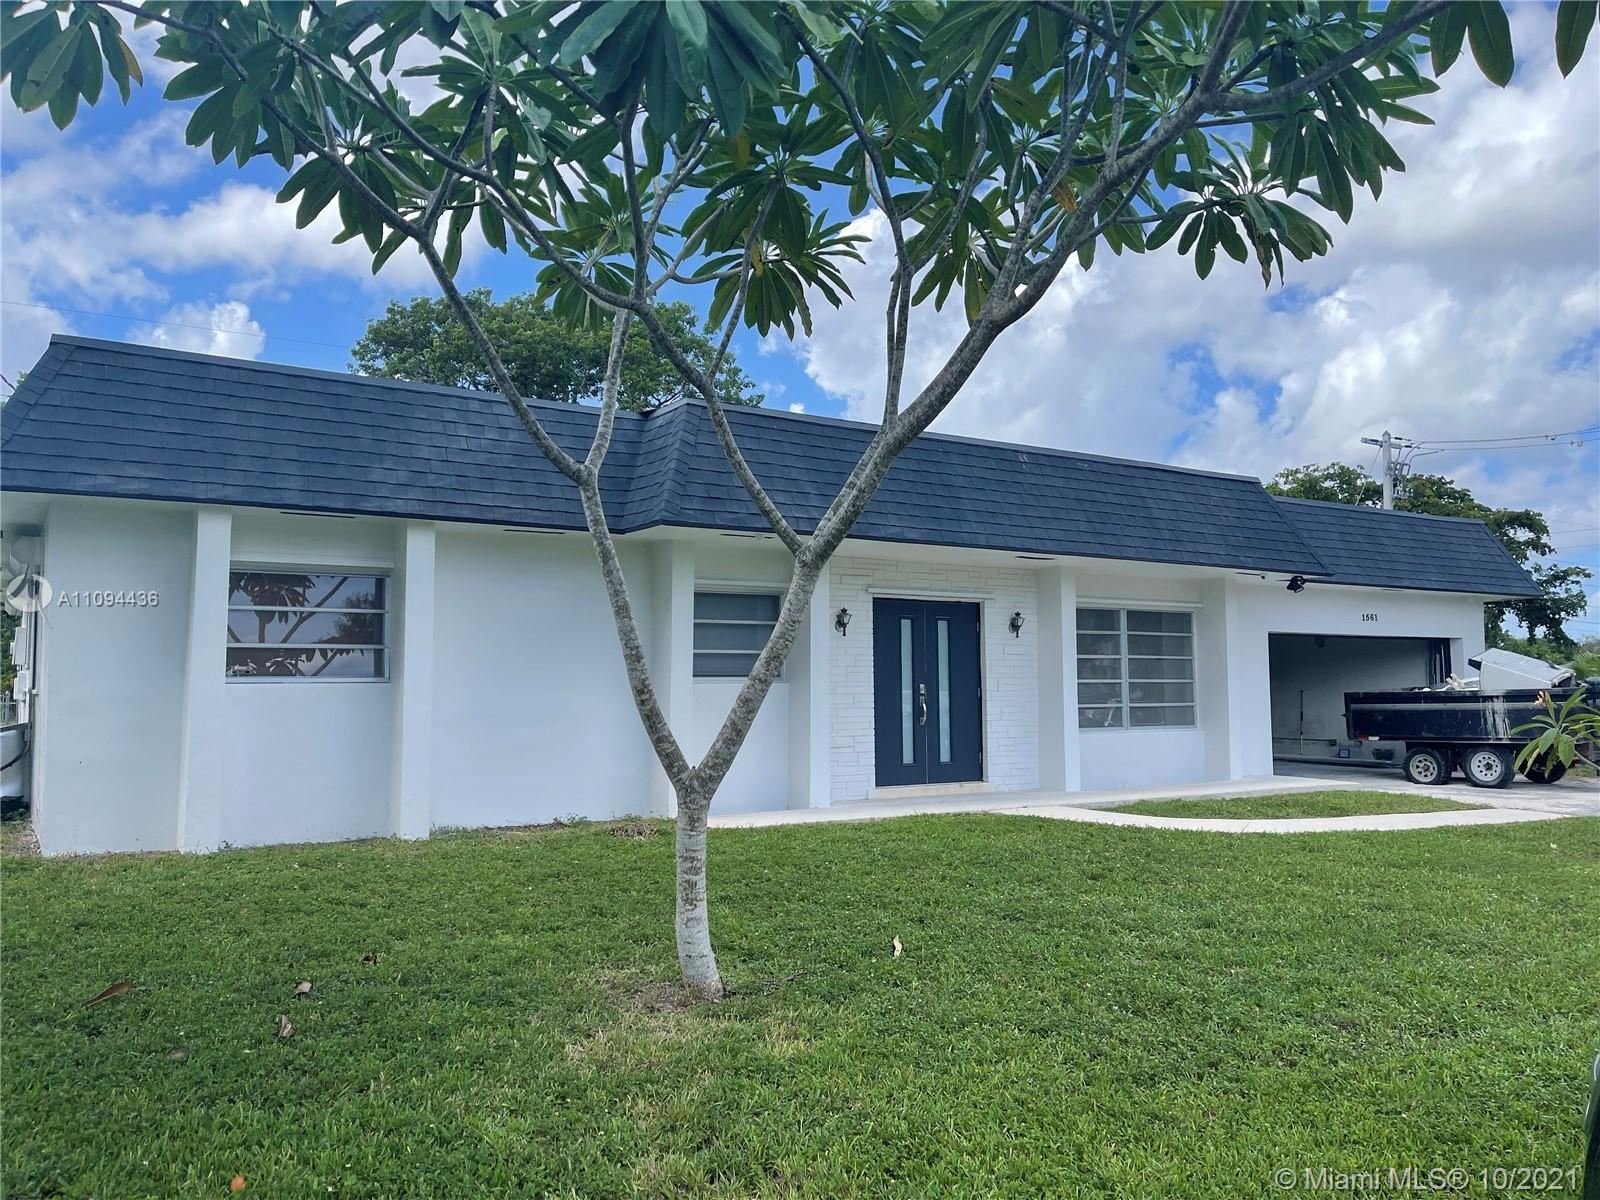 Photo of 1561 NW 75th Ter, Plantation, FL 33313 (MLS # A11094436)